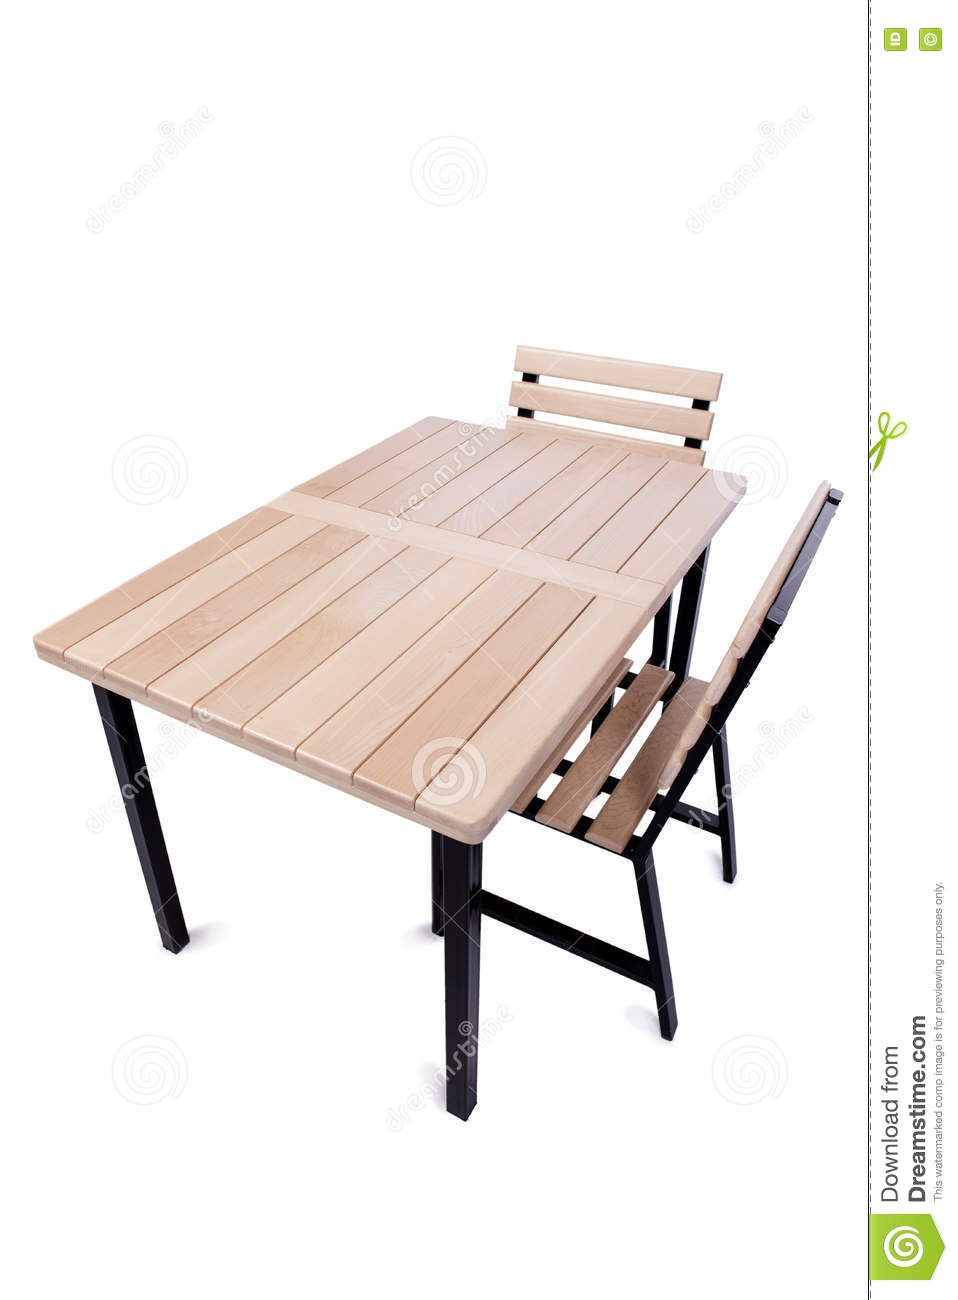 The table furniture isolated on the white